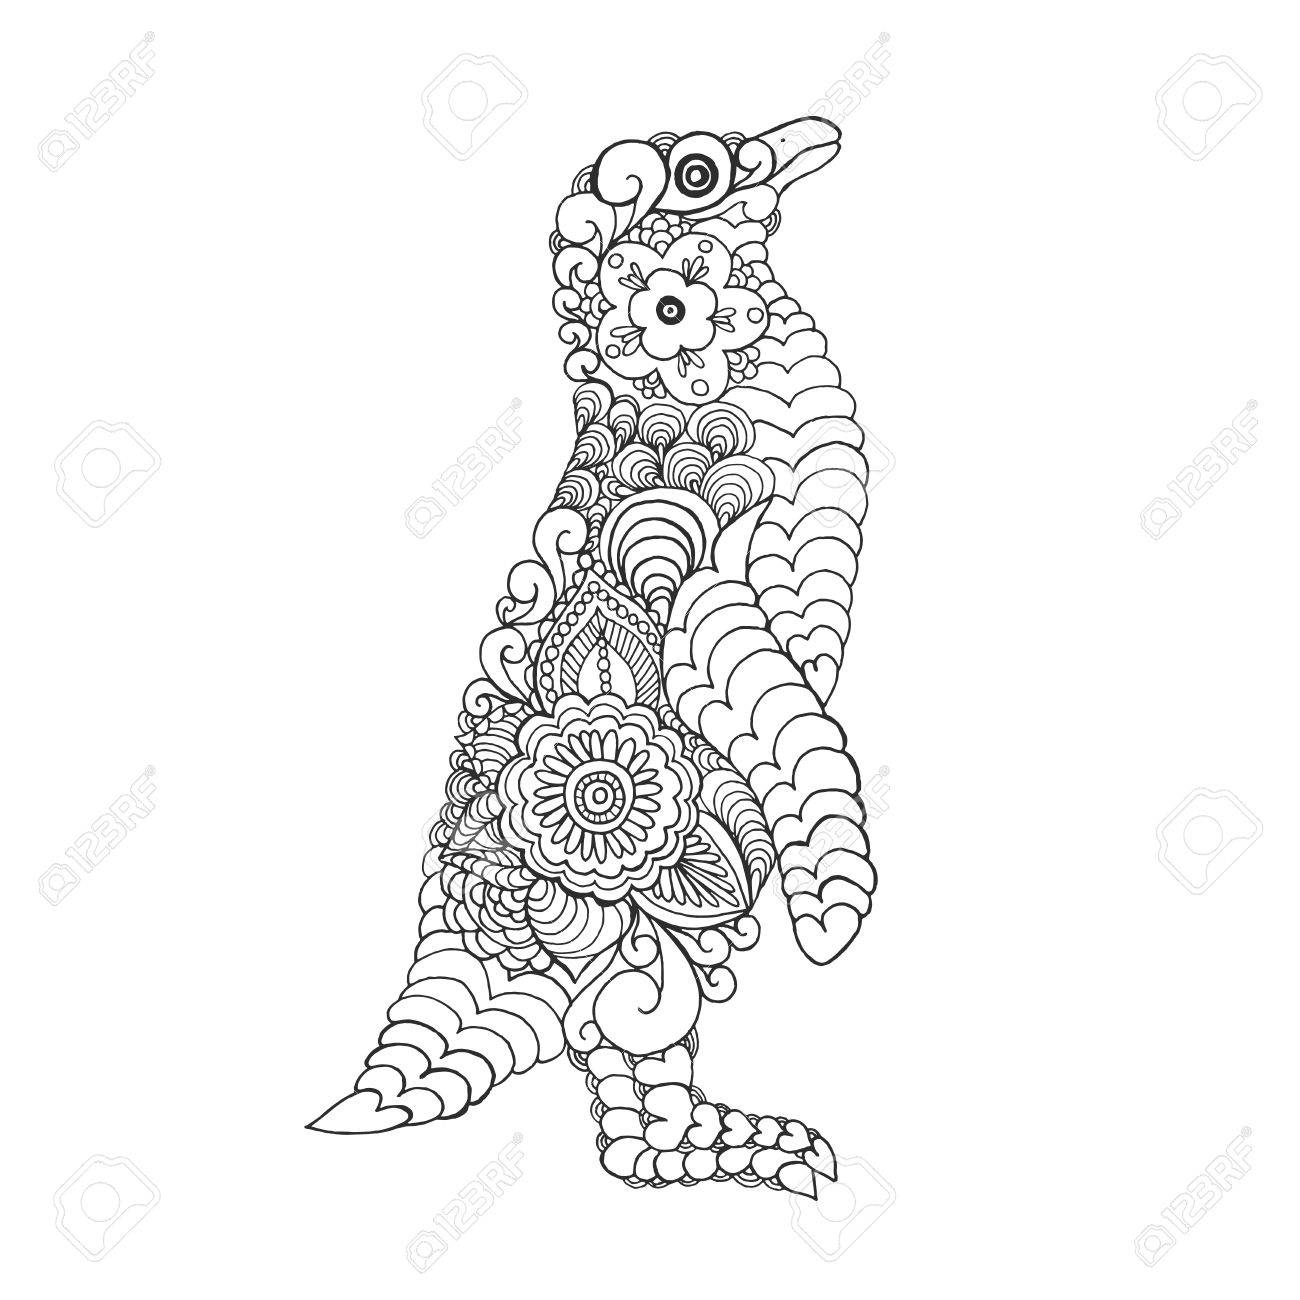 stylized cute penguin antistress coloring page black